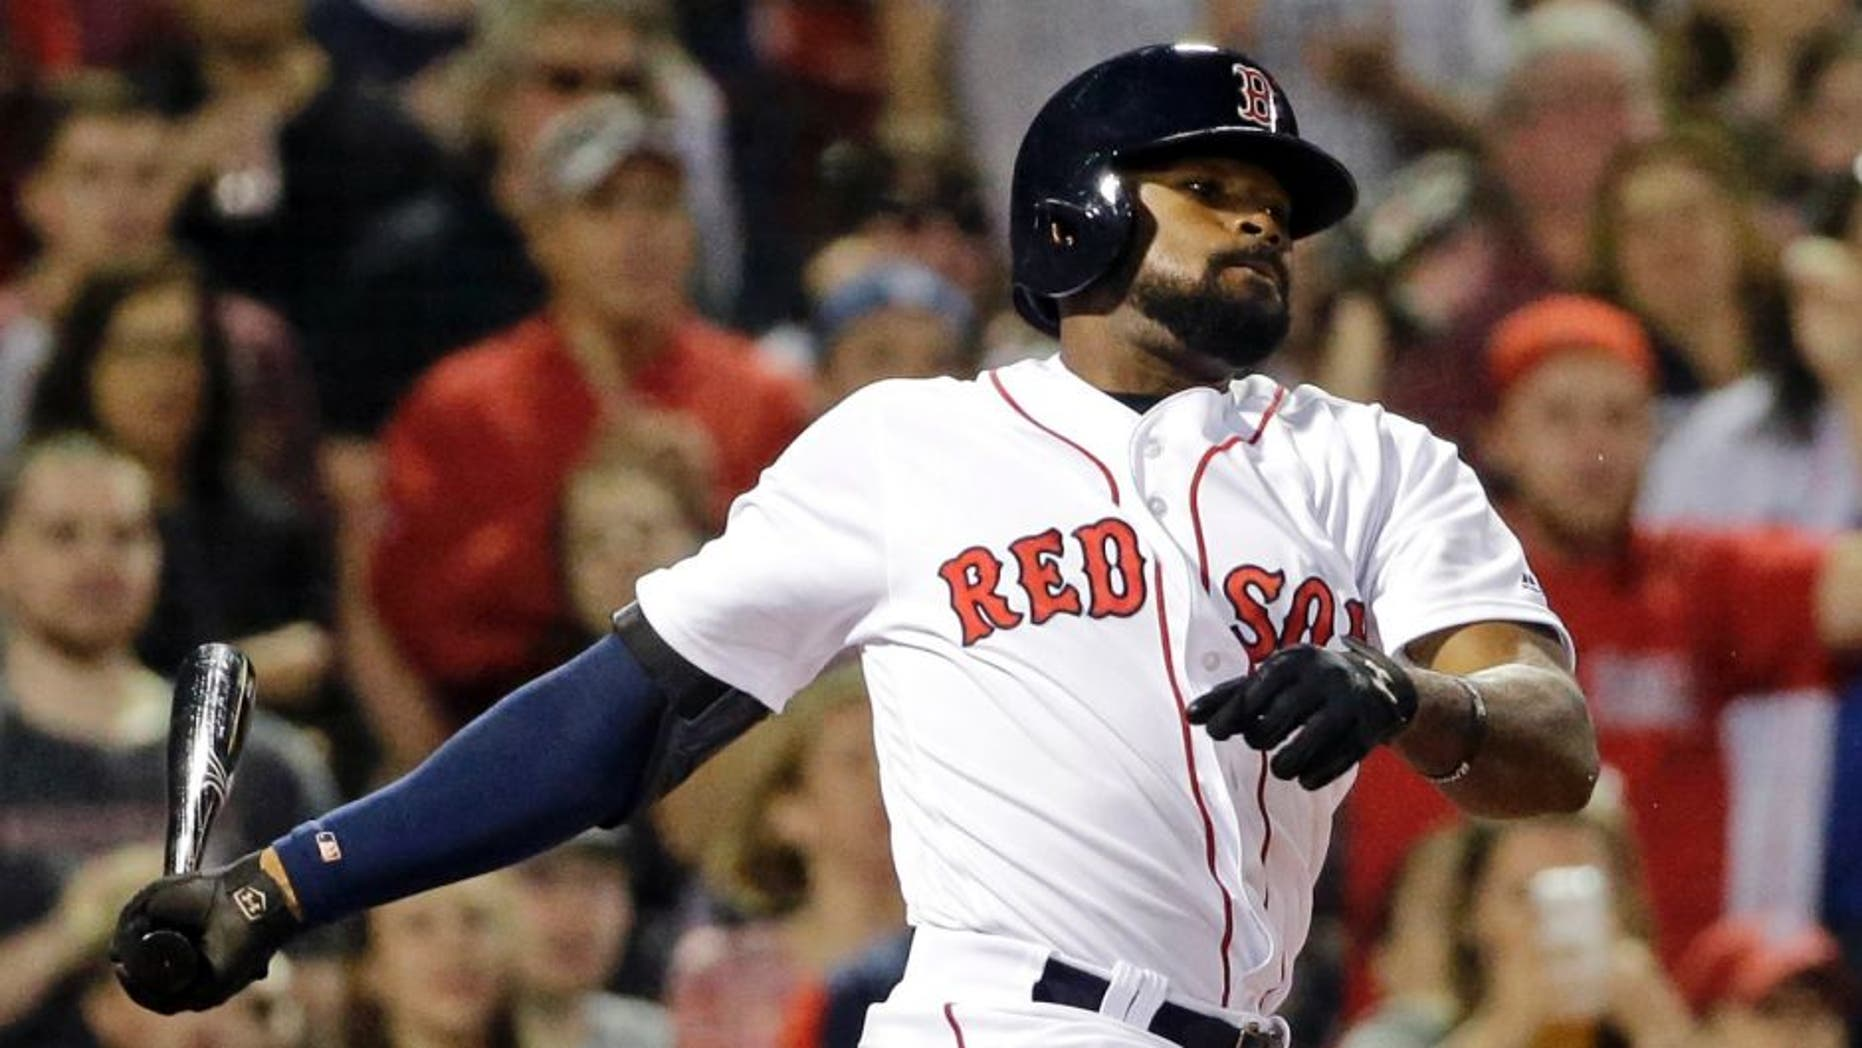 Boston Red Sox's Jackie Bradley Jr. grounds out against the Colorado Rockies during the eighth inning of a baseball game at Fenway Park, Thursday, May 26, 2016, in Boston. Bradley went 0-for-4, ending his 29-game hitting streak. (AP Photo/Elise Amendola)